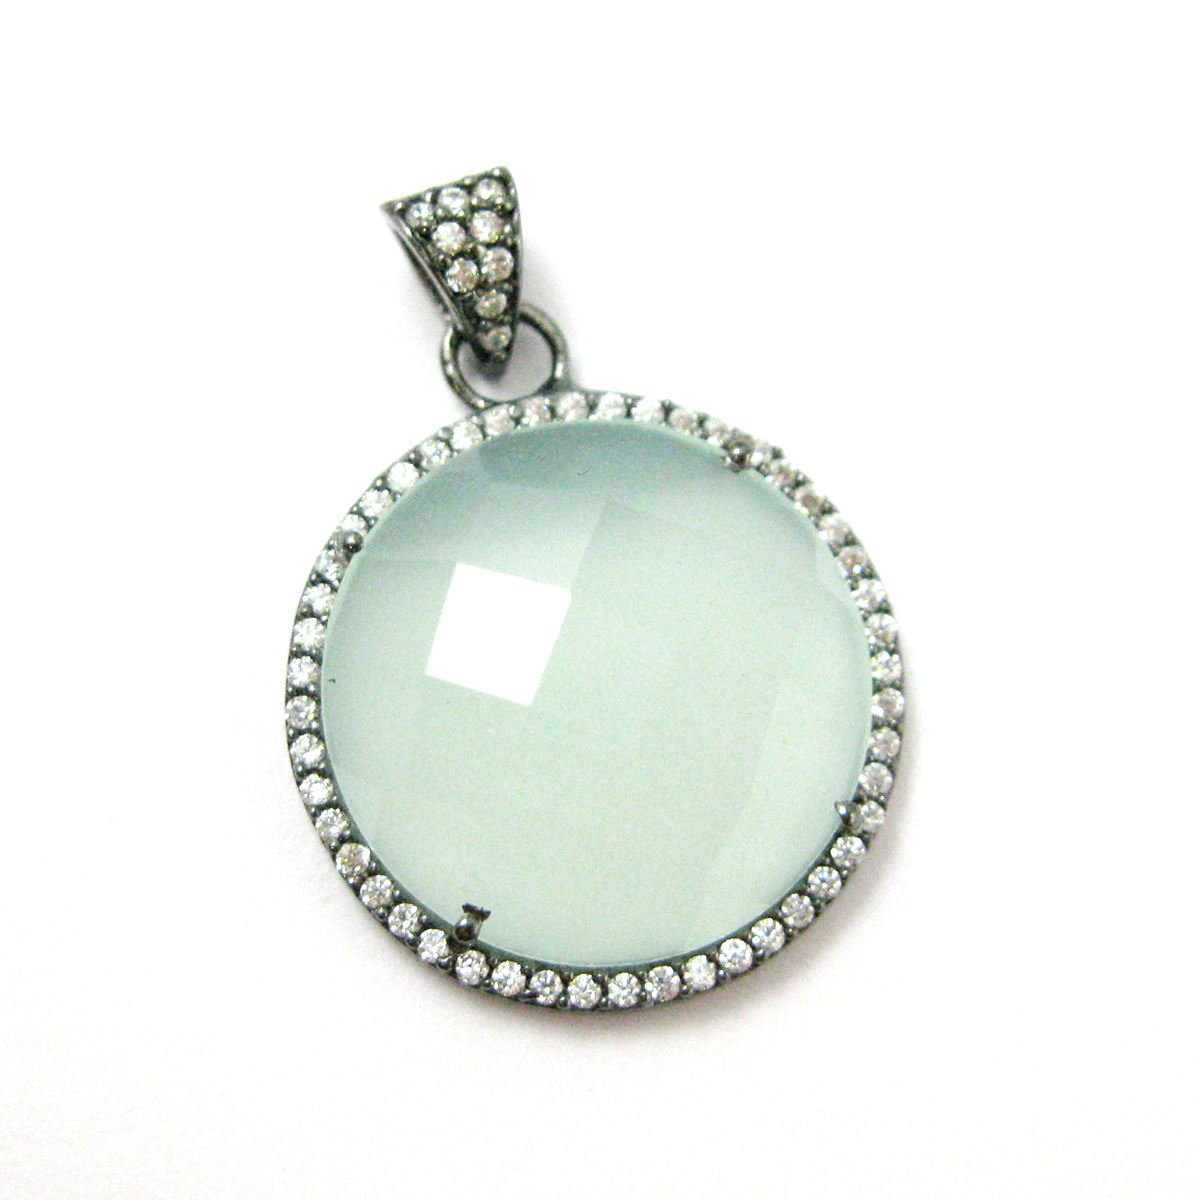 Oxidized Sterling Silver Pave Bezel Gemstone Pendant - Cubic Zirconia Pave Setting -  Round Faceted Stone-Aqua Chalcedony - 21mm